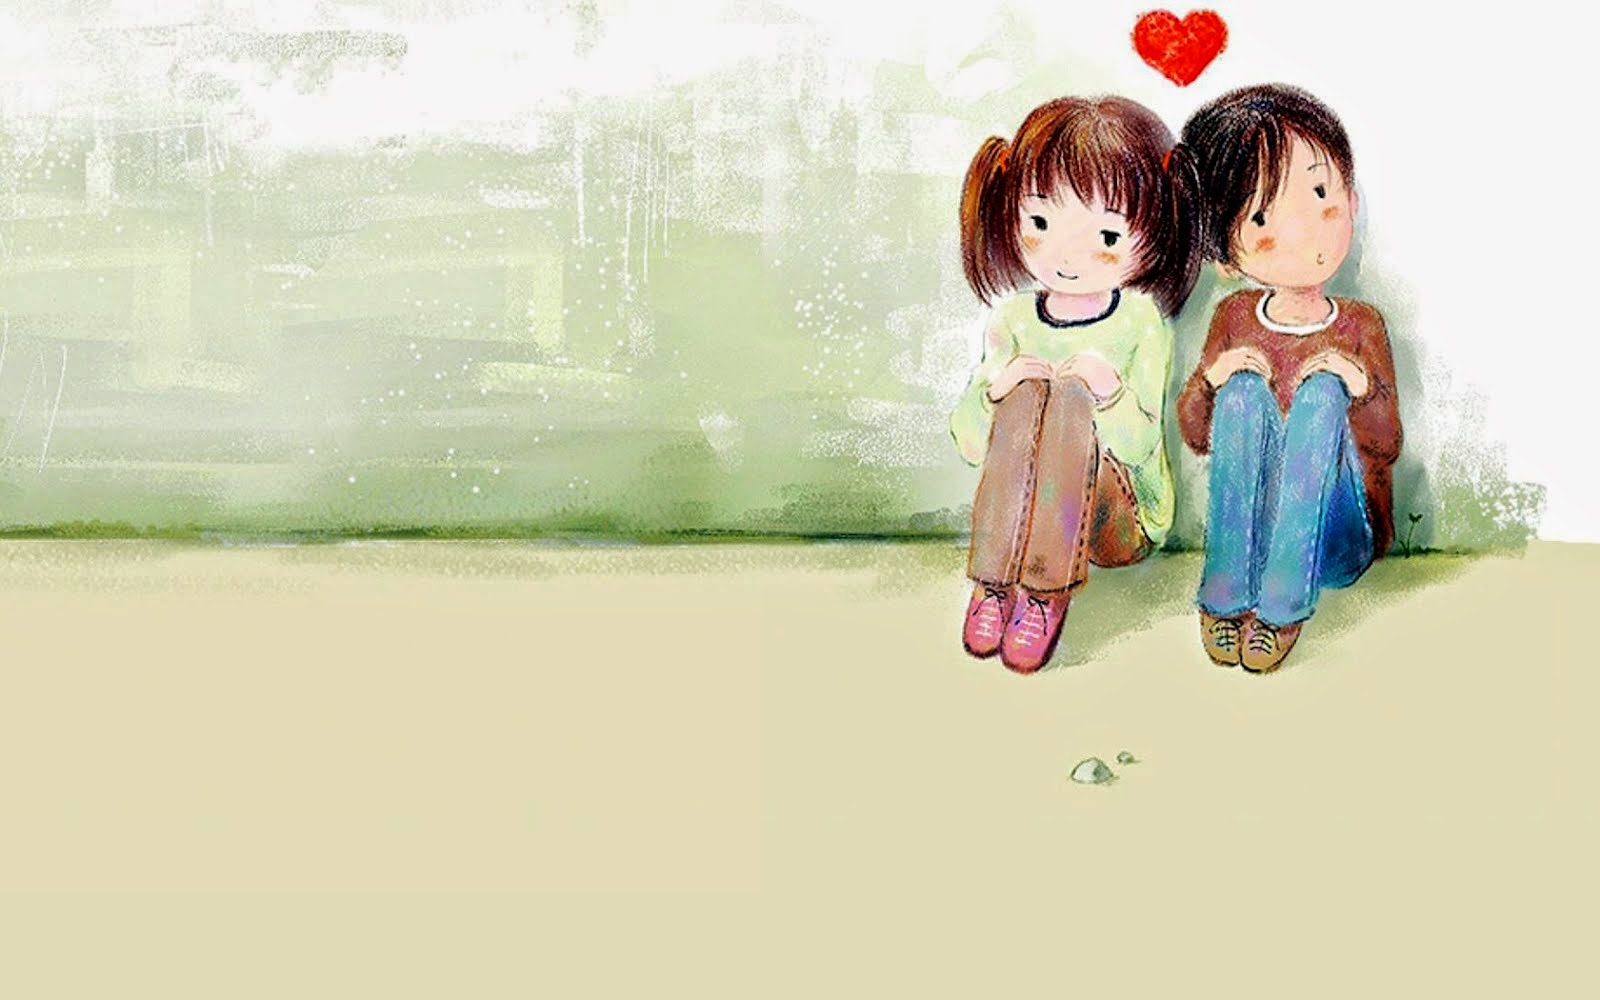 Love couple Animated Wallpaper Hd : cute Little cartoon couple In Love HD Wallpaper Best ...